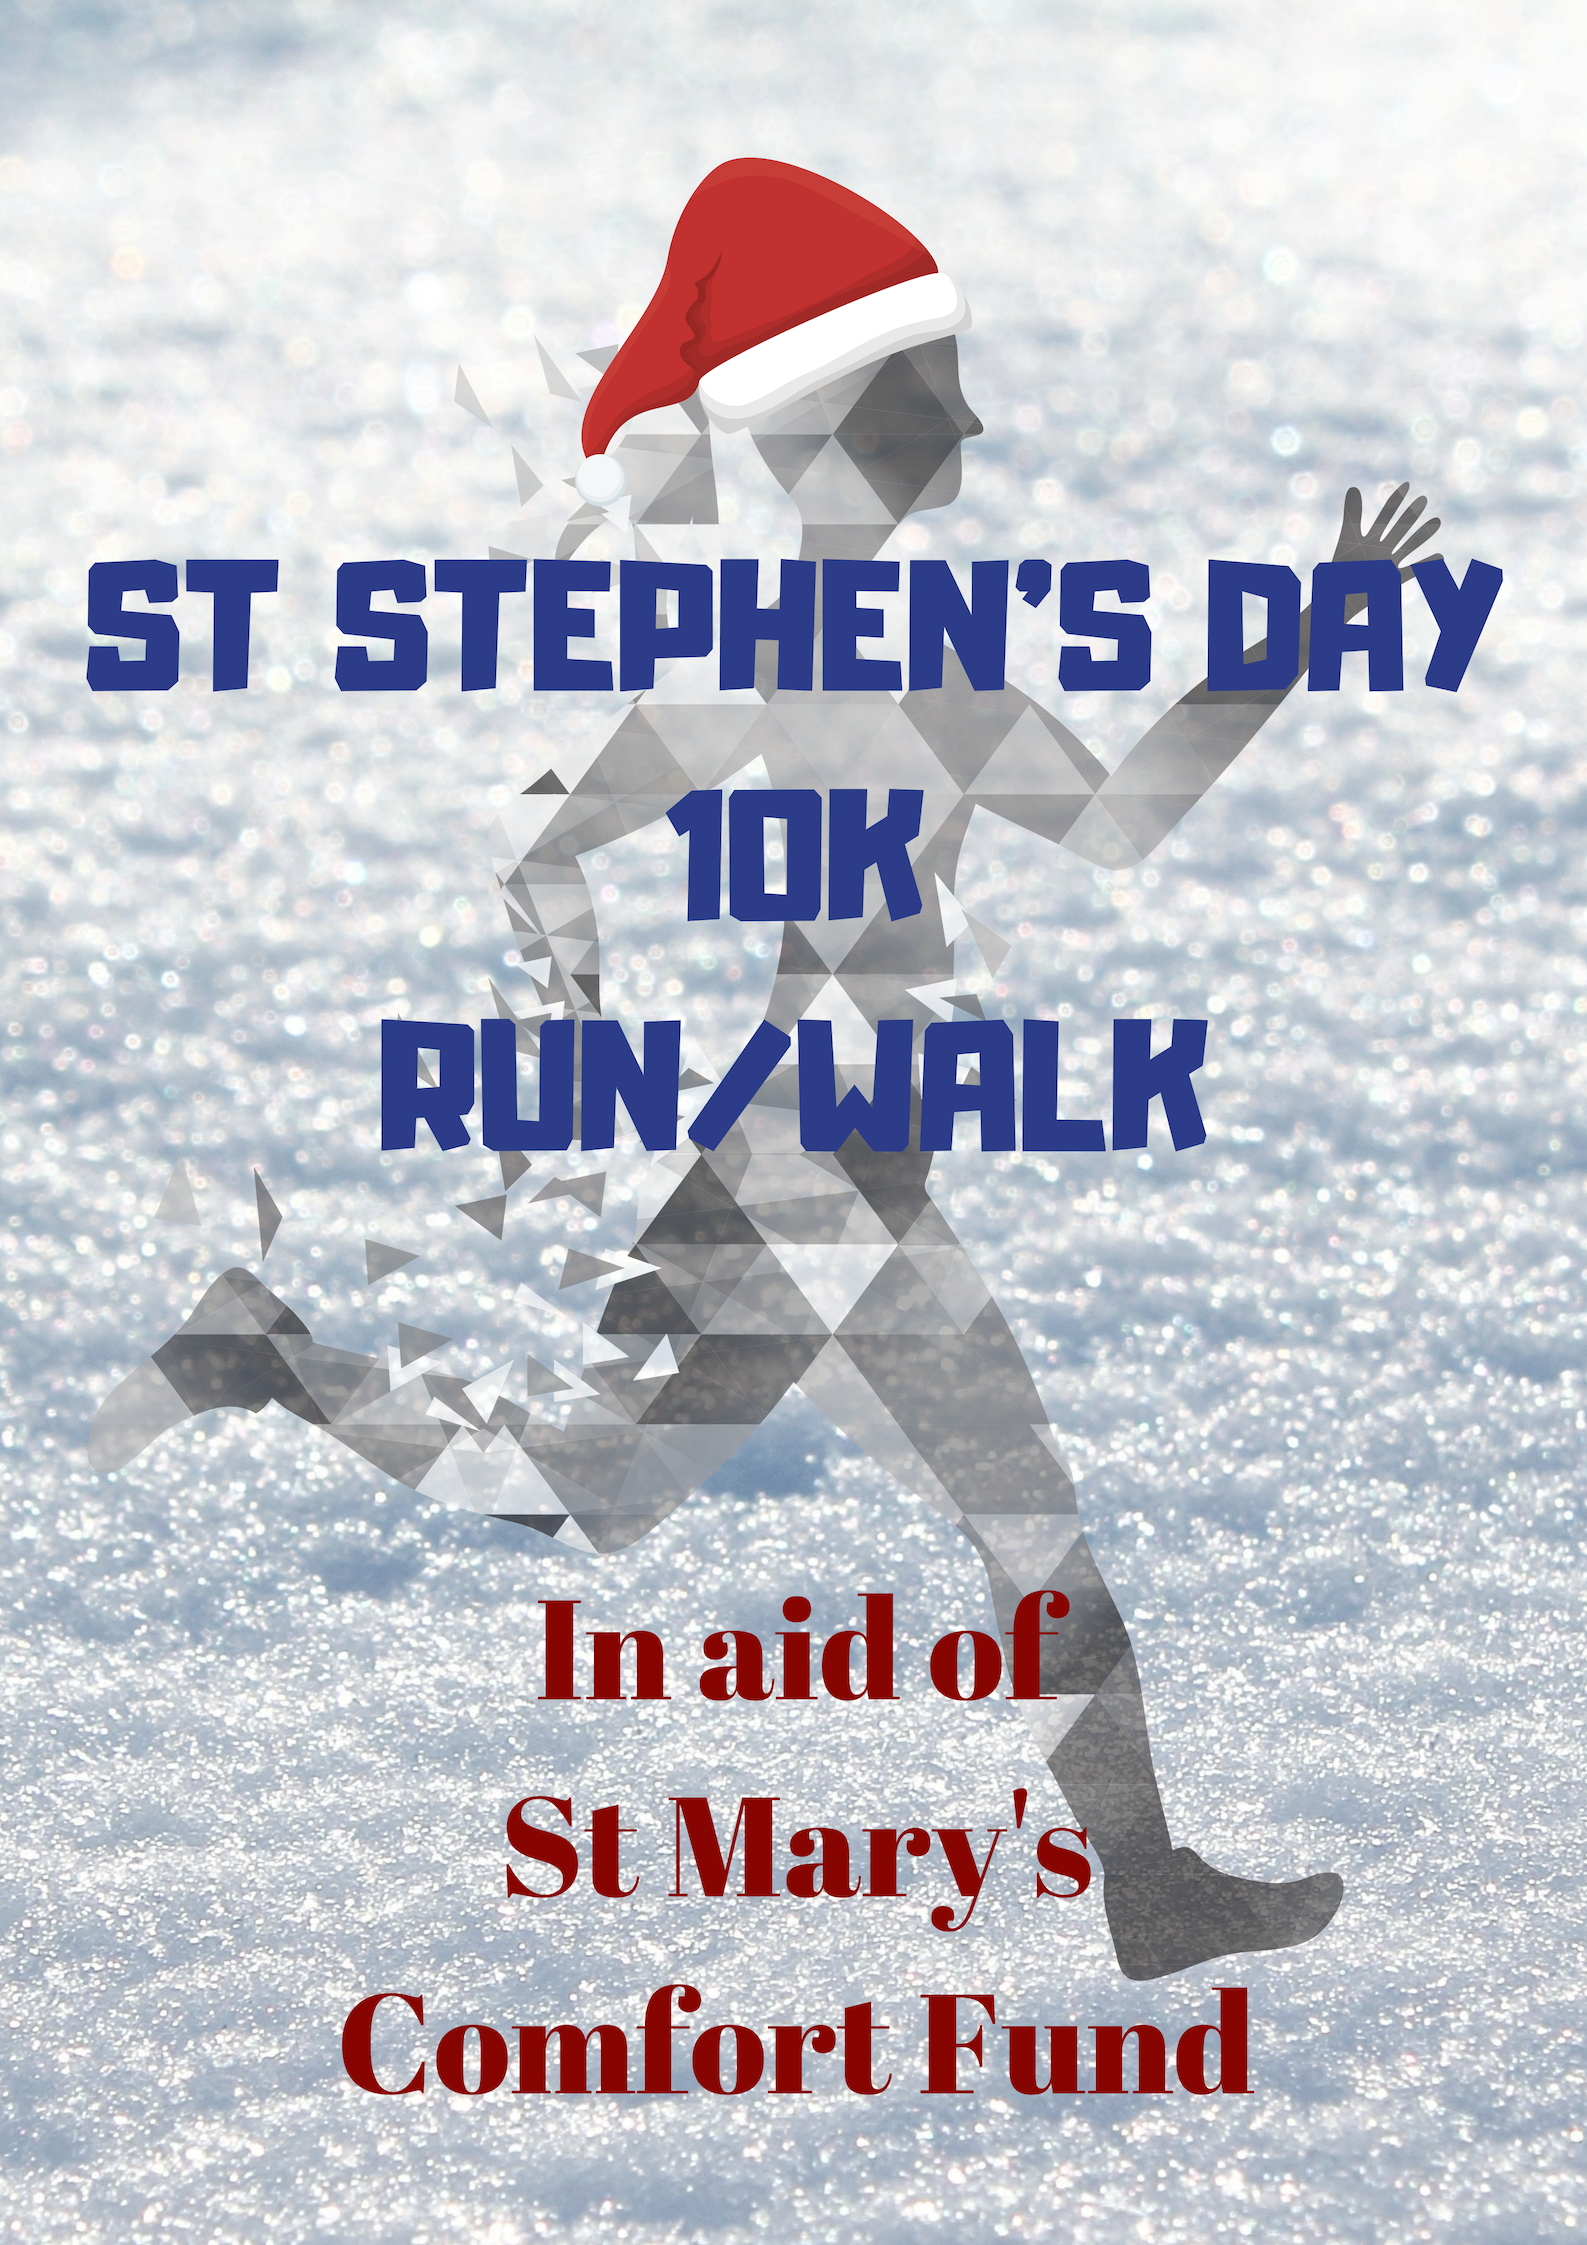 325acc0ccfb6 The 14th St. Stephen s Day 10k walk run will take place on Wednesday 26th  December